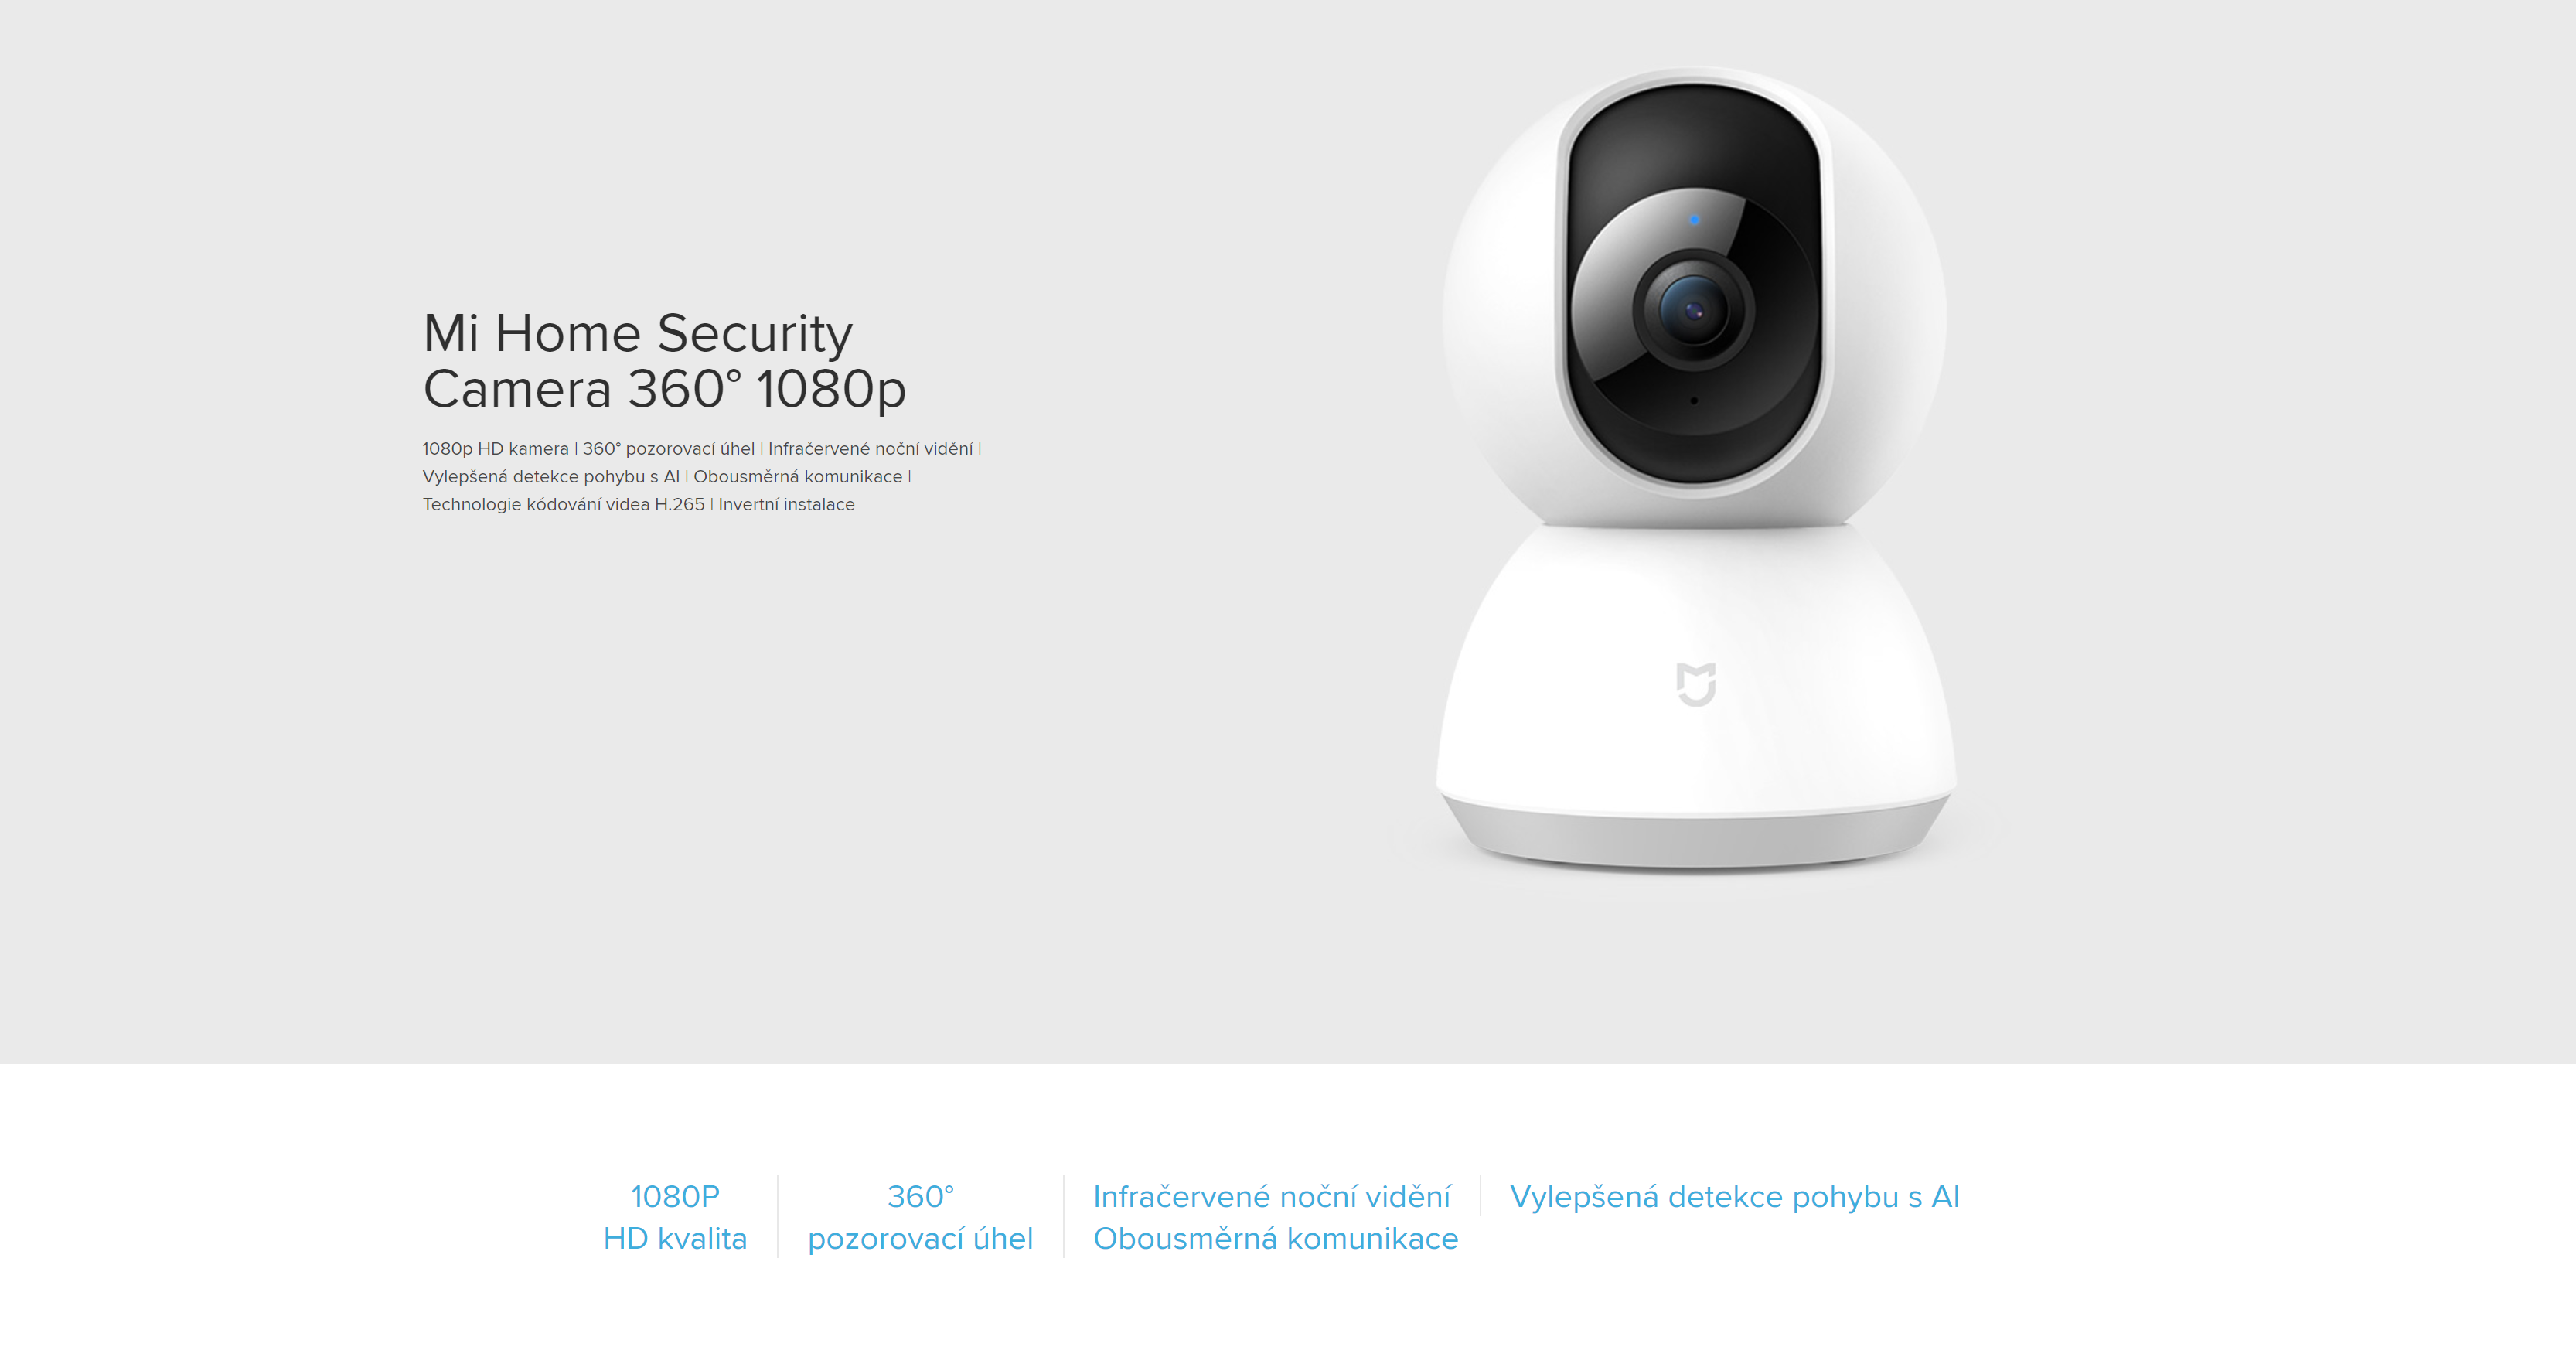 Xiaomi Mi Home Security Camera 360 1080P - Chytrá IP bezpecnostni kamera 1